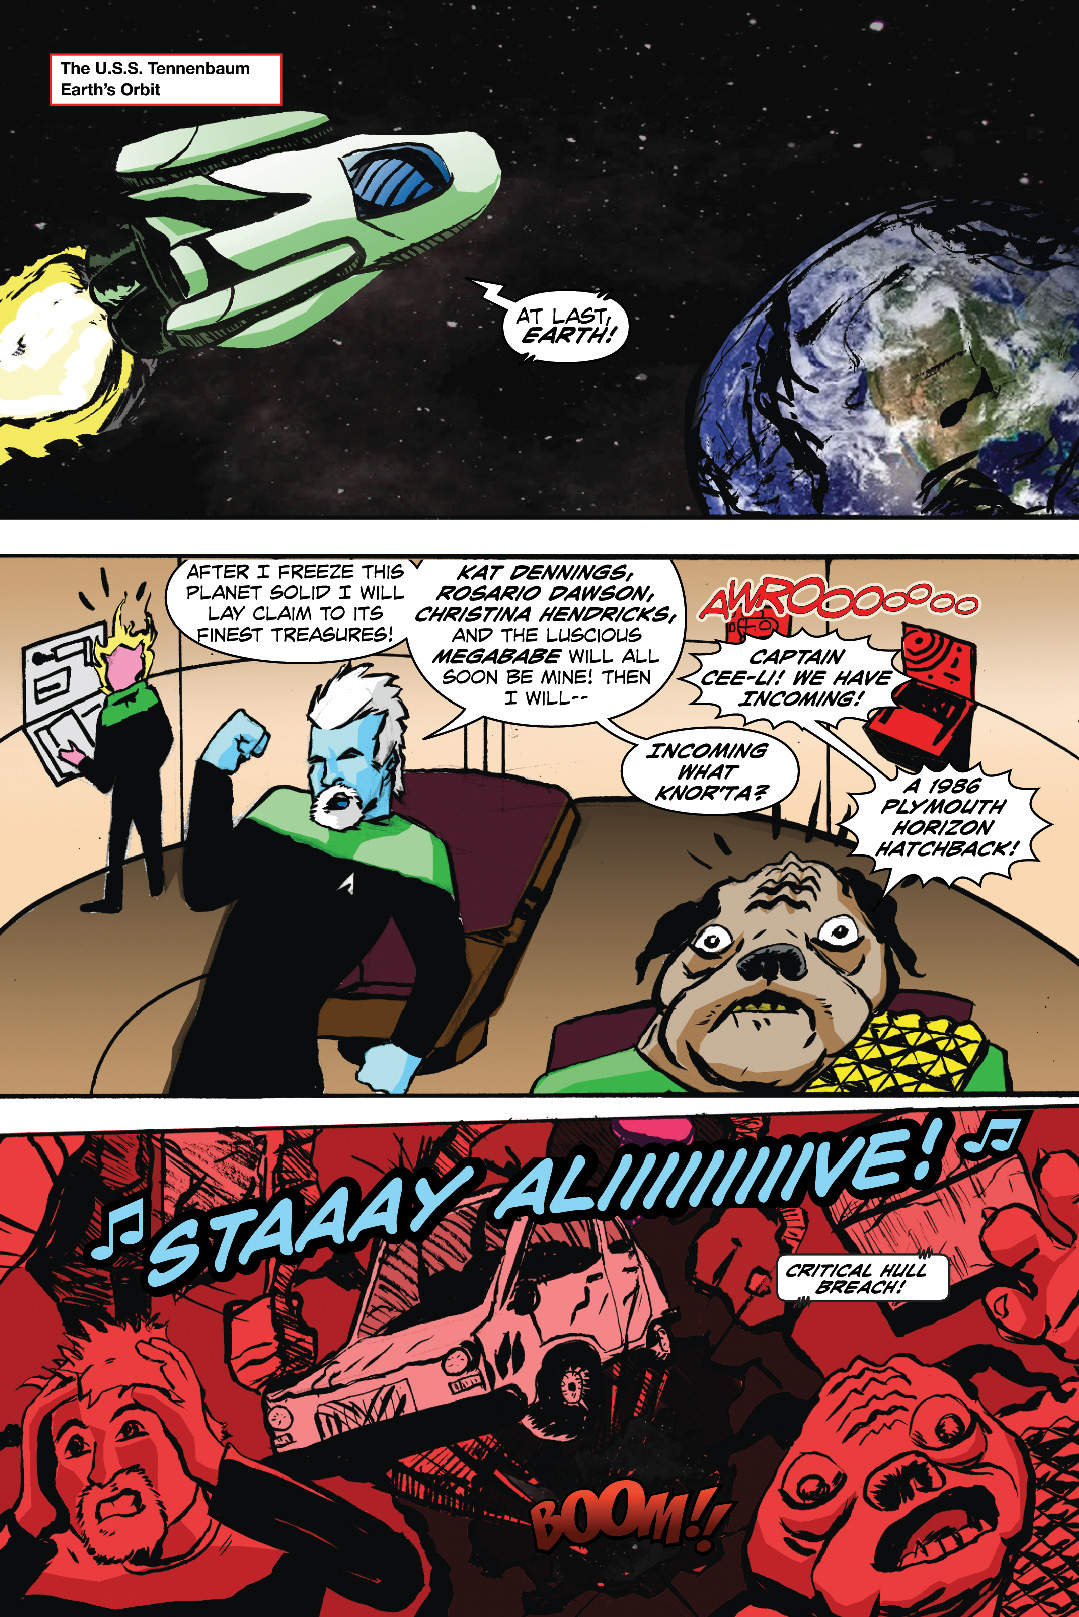 PAGE 1 Panel 1. Establishing shot of a large space ship over the Earth. The ship is retro and has elements of Star Wars and Star Trek to it. 1 CAP: The U.S.S. Tennenbaum CAPTAIN SEEL-E: (OP) At last, Earth! Panel 2. Interior bridge shot of the starship. Captain Seel-E is blue skinned with white hair and a white beard and a vaguely Star Trek TNG styled uniform. N'rta is a Chewbacca Worf like Pug alien with glasses, BurnedHam is a pig with a Ghost Rider look to him. CAPTAIN SEEL-E: After I freeze this planet solid I will lay claim to its finest treasures! Kat Dennings, Rosario Dawson, Christina Hendricks, and the luscious MegaBabe will all soon be mine! Then I will— N'RTA Captain Seel-E! We have INCOMING! Panel 3. Inset smaller panel CAPTAIN SEEL-E: Incoming WHAT? N'RTA: A 1986 Plymouth Horizon Hatchback! Panel 4. A Plymouth Horizon is smashing through the ship, the characters run to the foreground in the style of Action Comics #1. SFX: Radio from Car as SFX across the panel: Stay Aliiiiive!